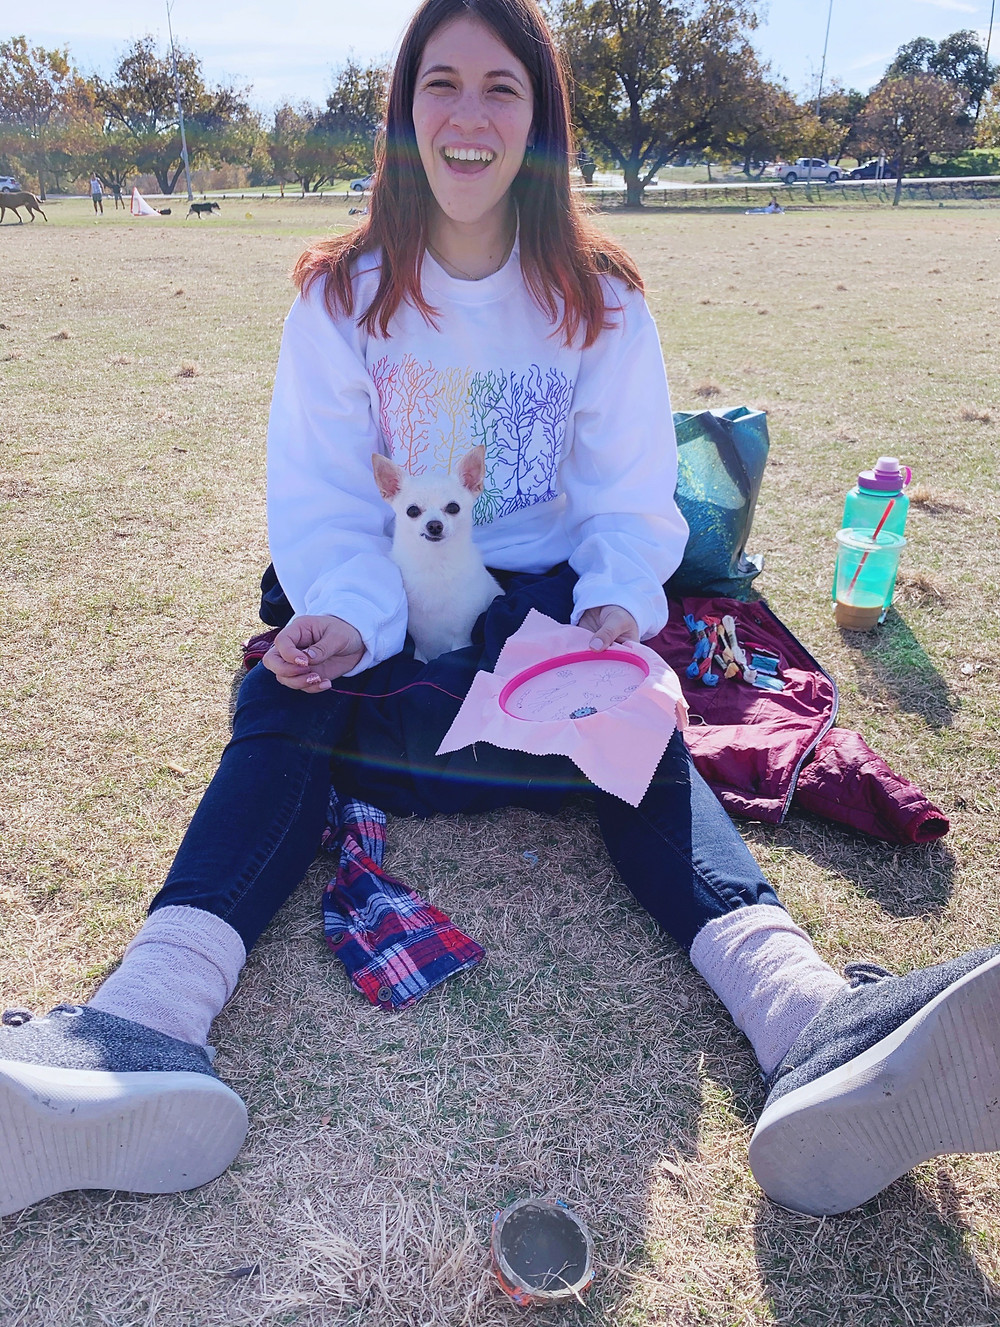 Lauren sat in a park stitching with her dog.